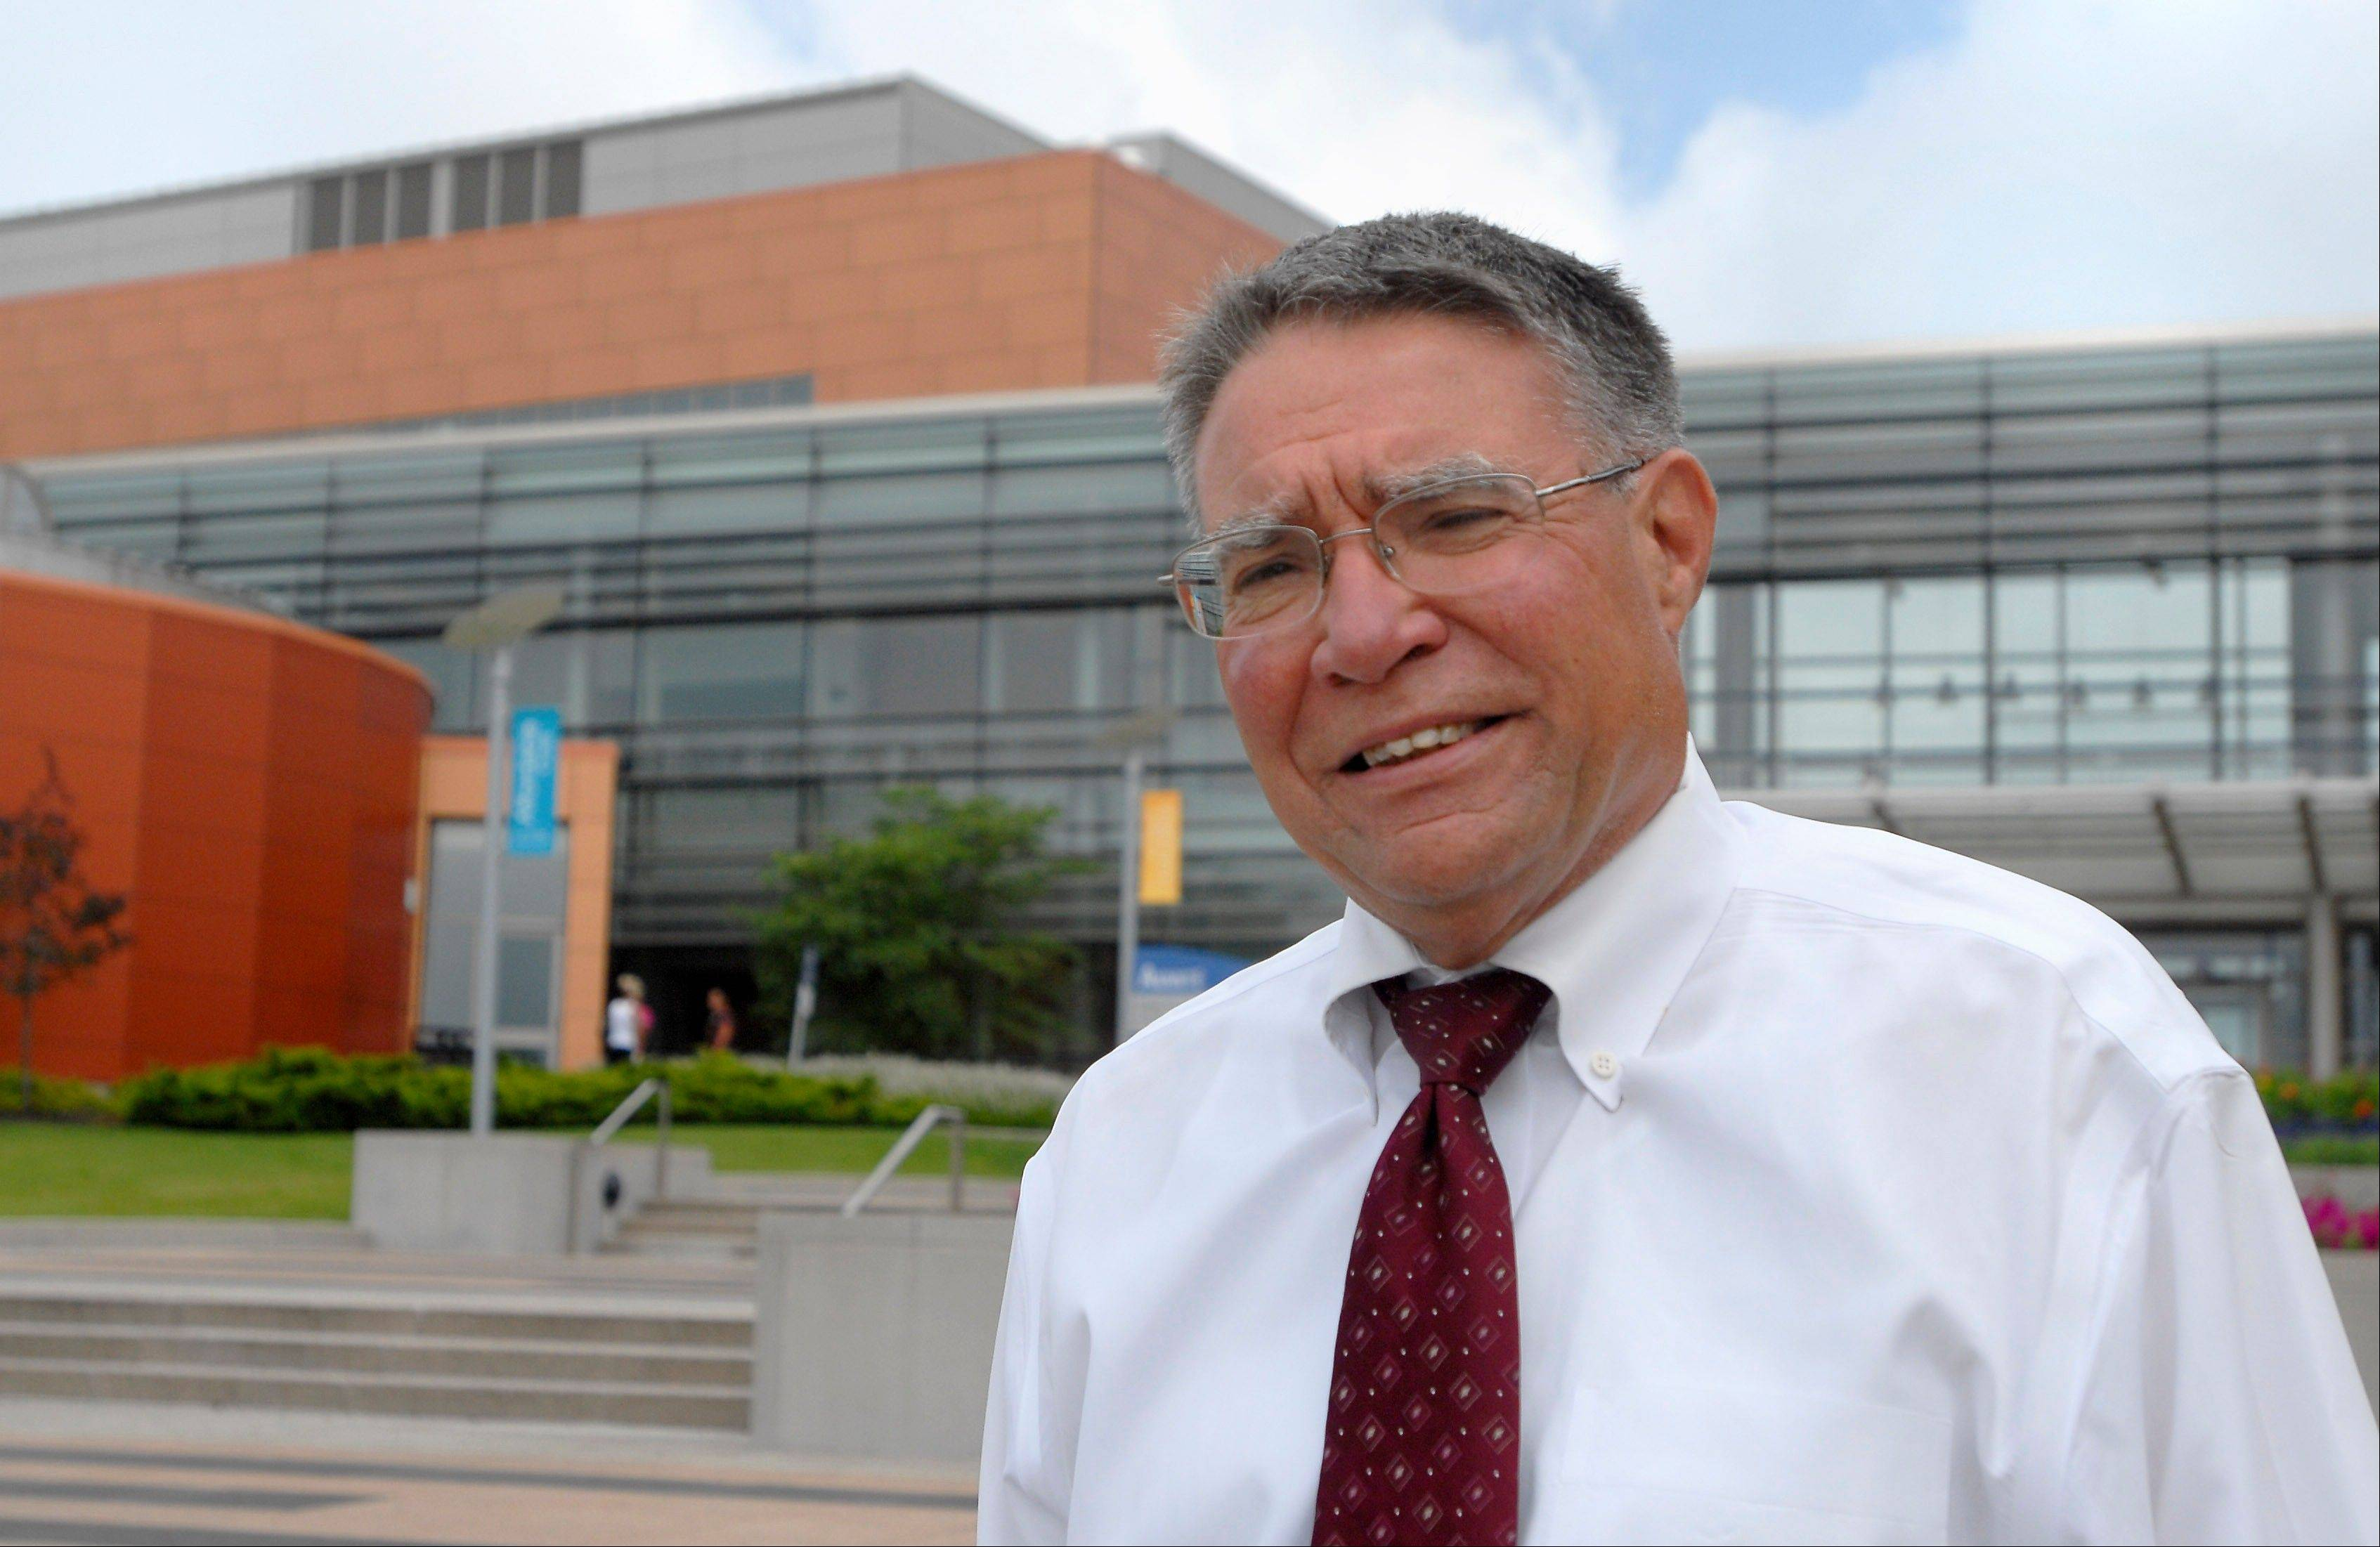 Harper College President Ken Ender will take part Thursday in a higher education summit hosted by the White House. Harper's partnership with local high schools to better prepare graduating seniors for college will be highlighted at the event, which aims to create programs and share ideas to help more low-income and minority students attend college.